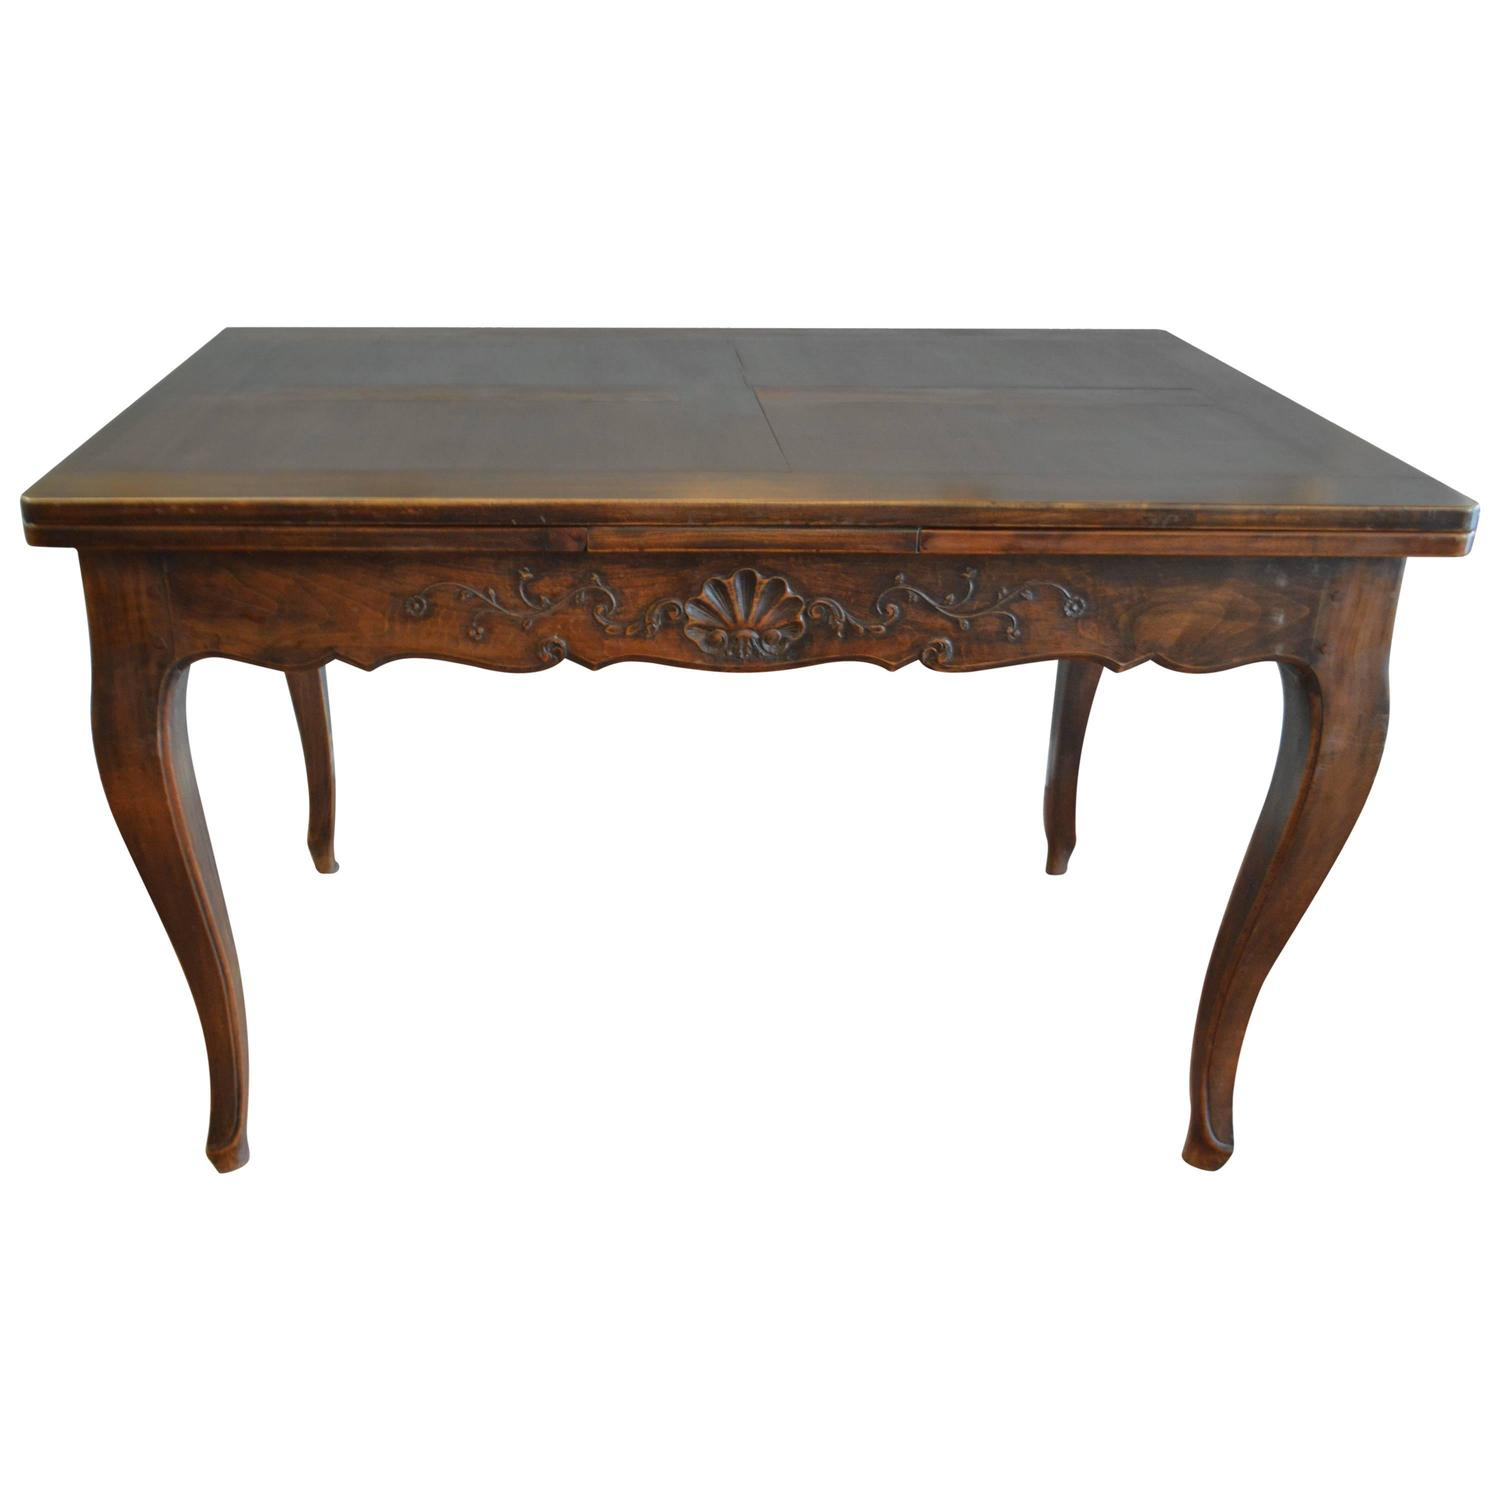 French country style walnut dining table at 1stdibs for Dining room tables 1940s